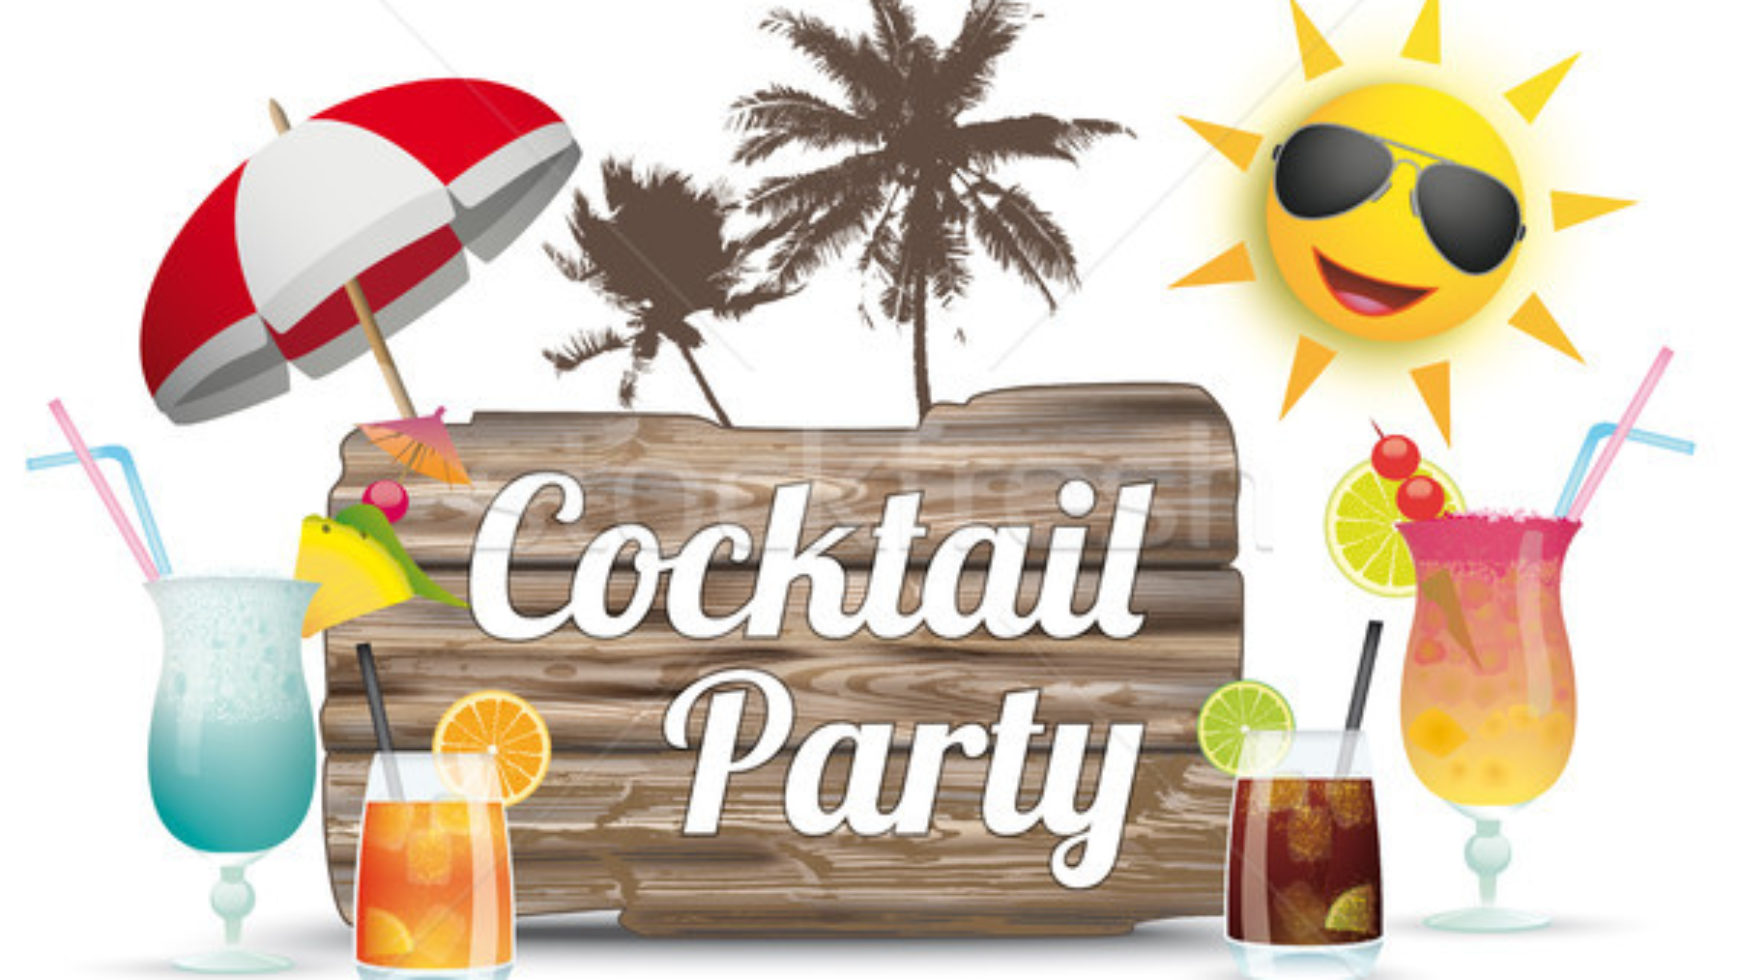 Tips for Planning Cocktail Party